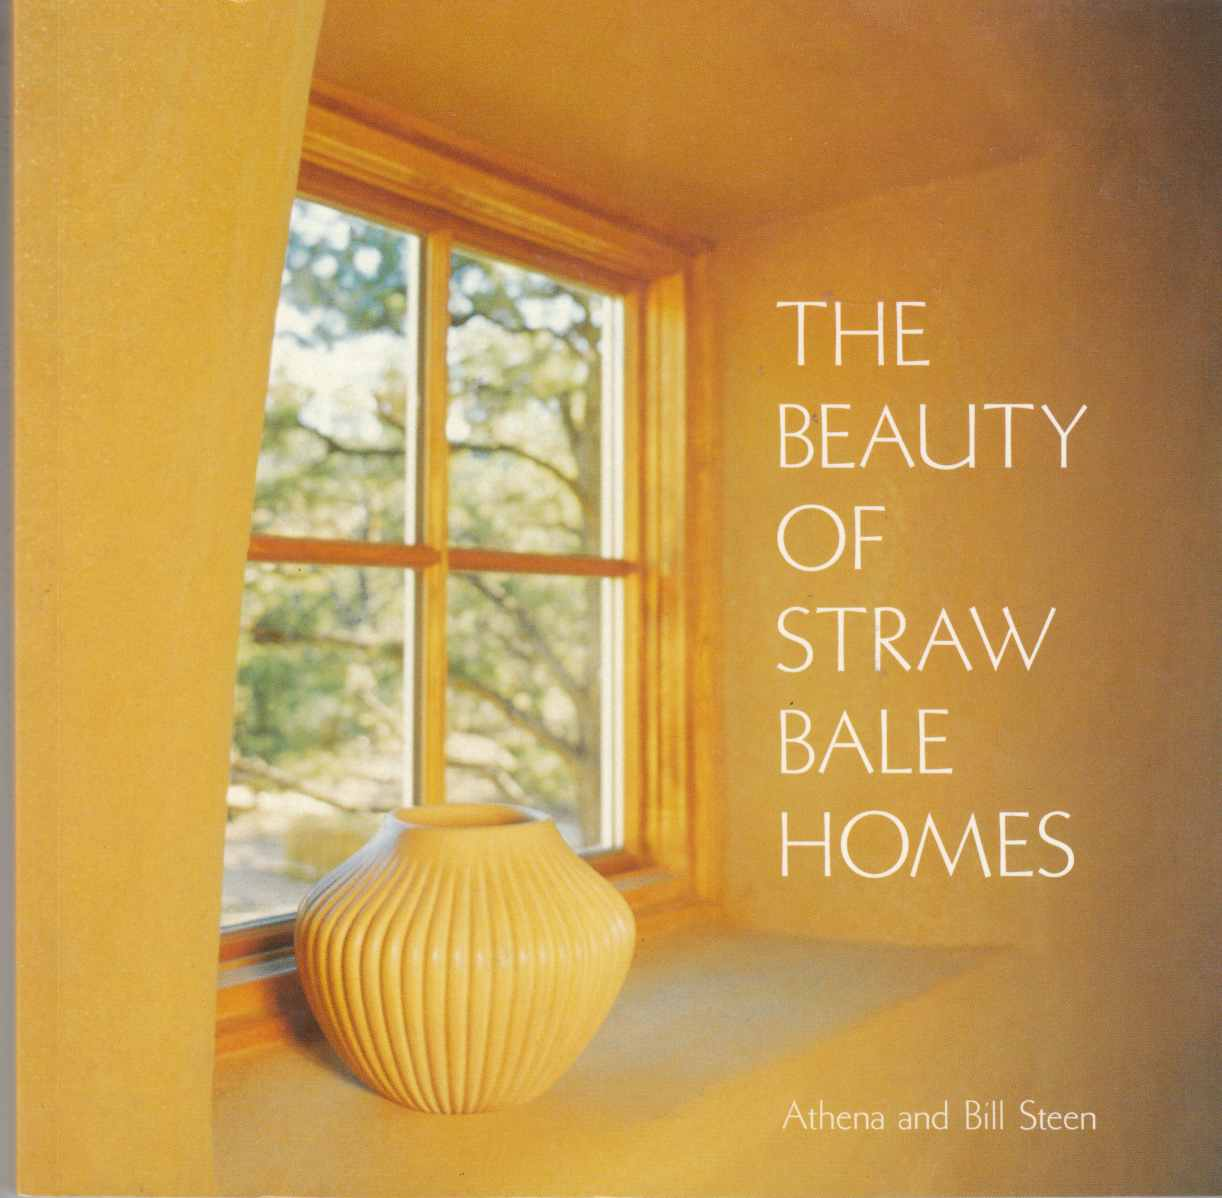 Image for The Beauty of Straw Bale Houses